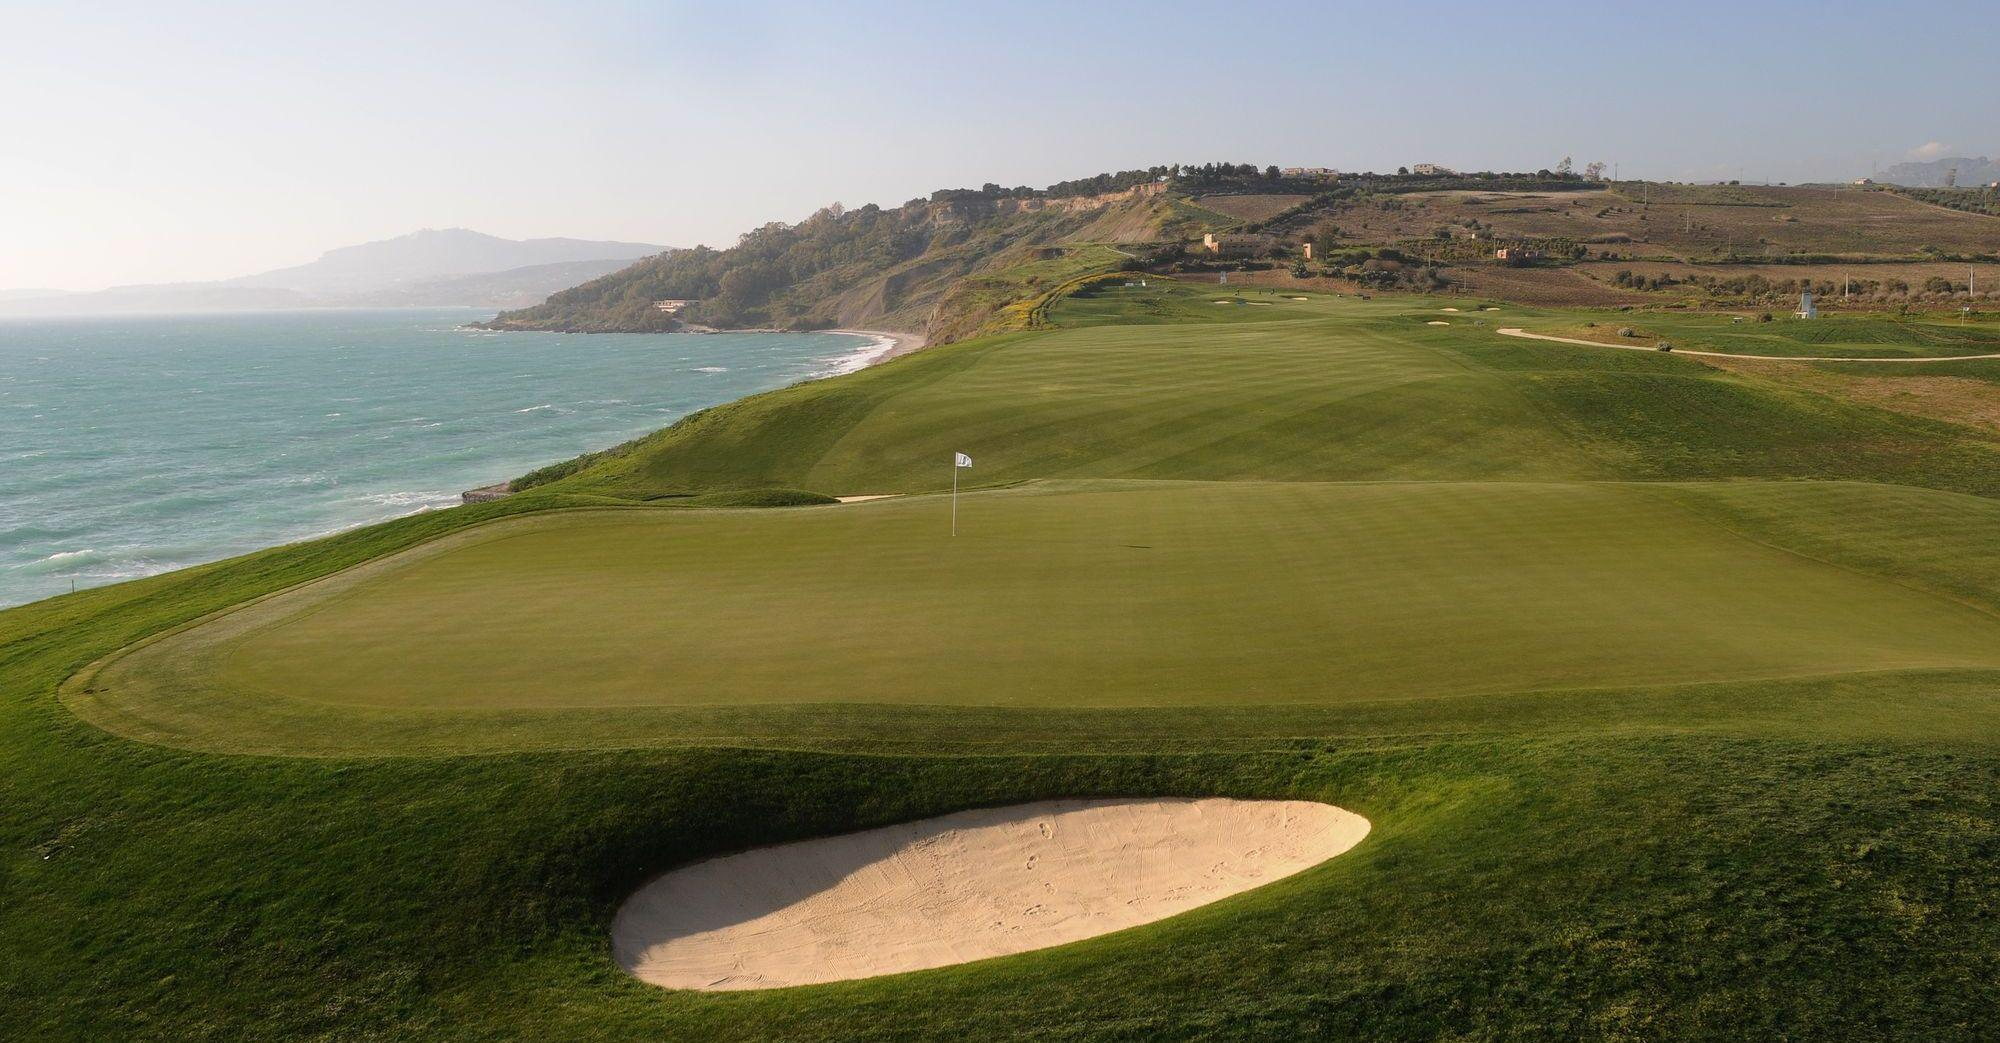 Verdura Golf Club provides several of the finest golf course within Sicily